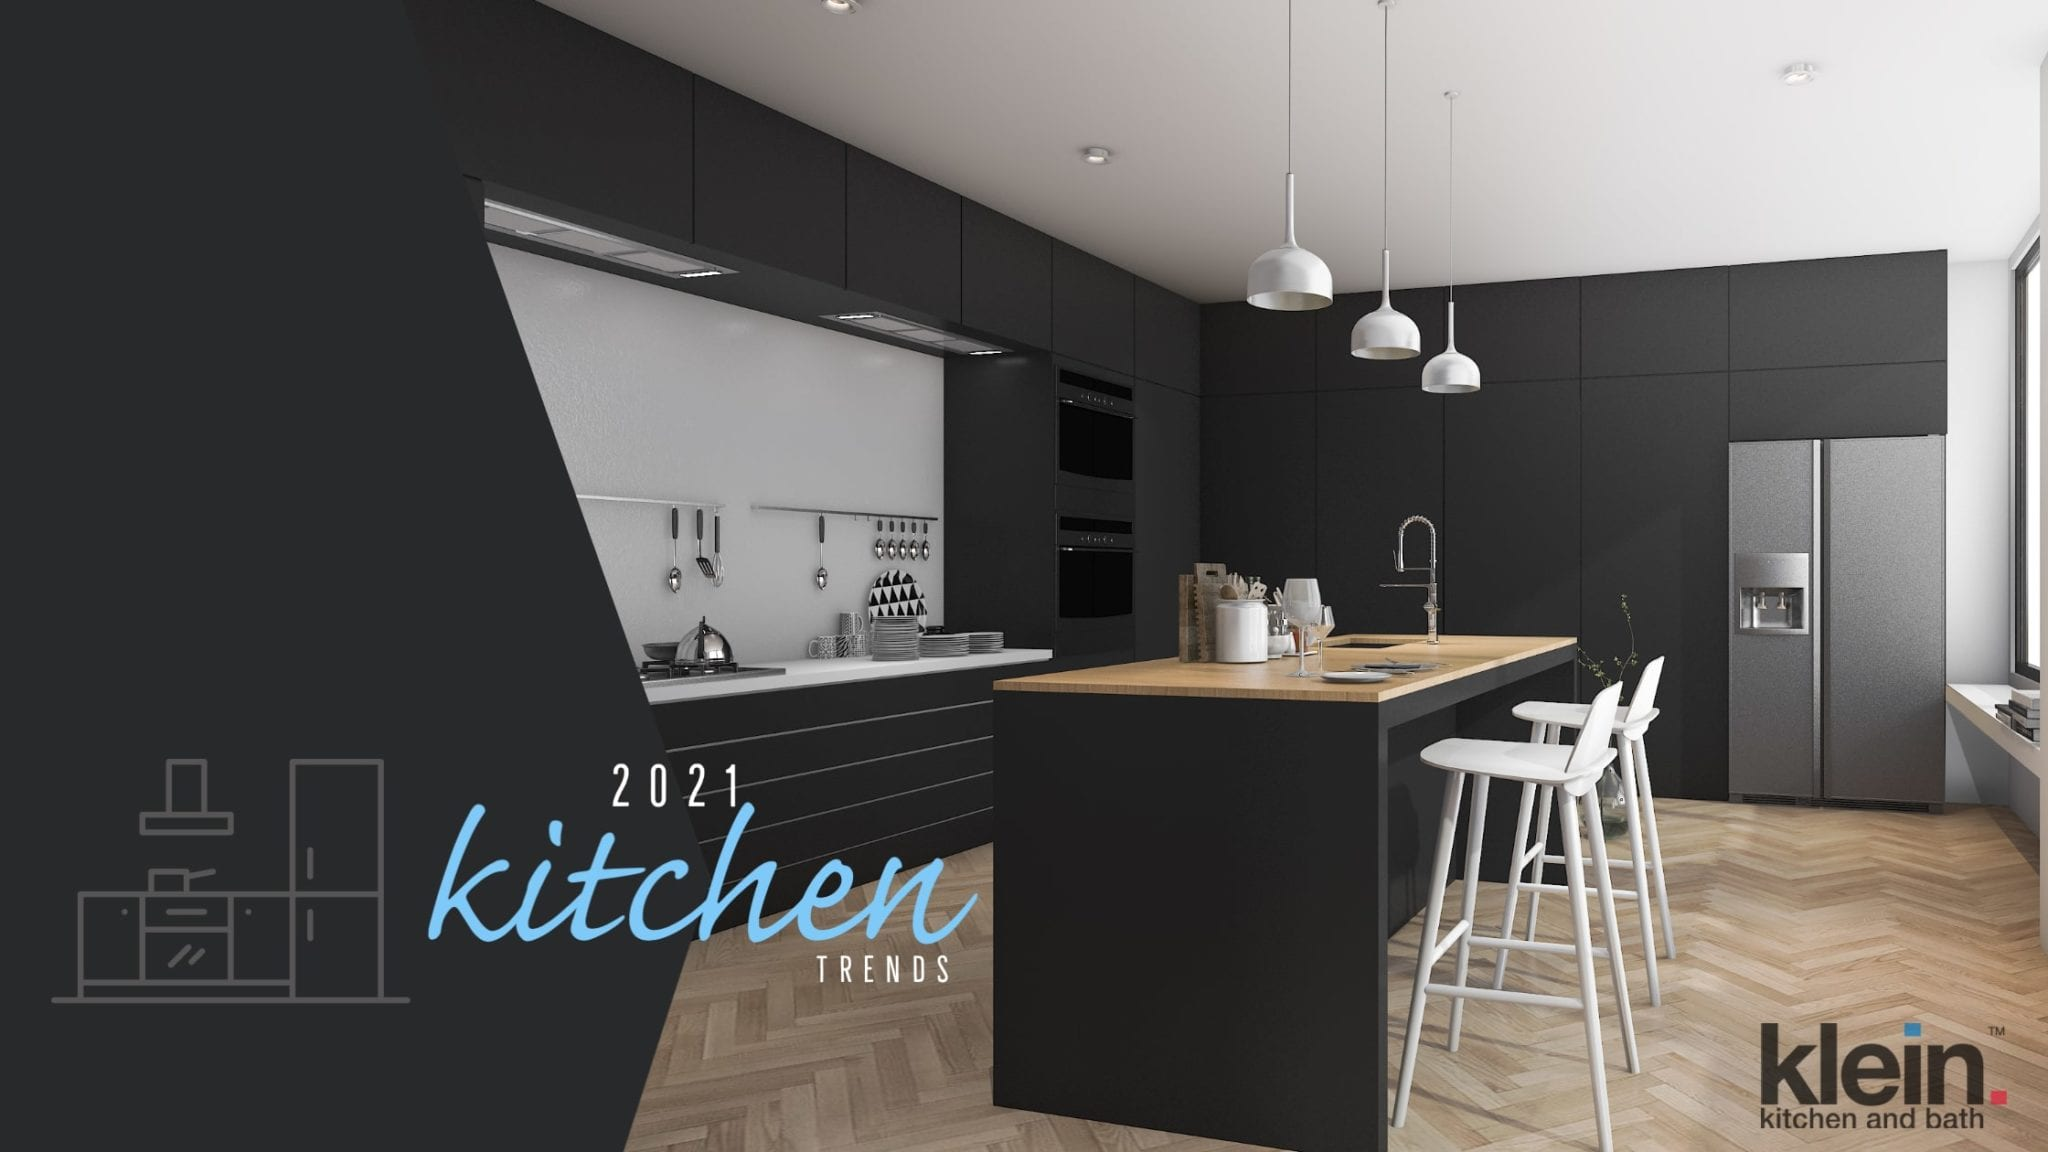 10 Kitchen Trends of 2021